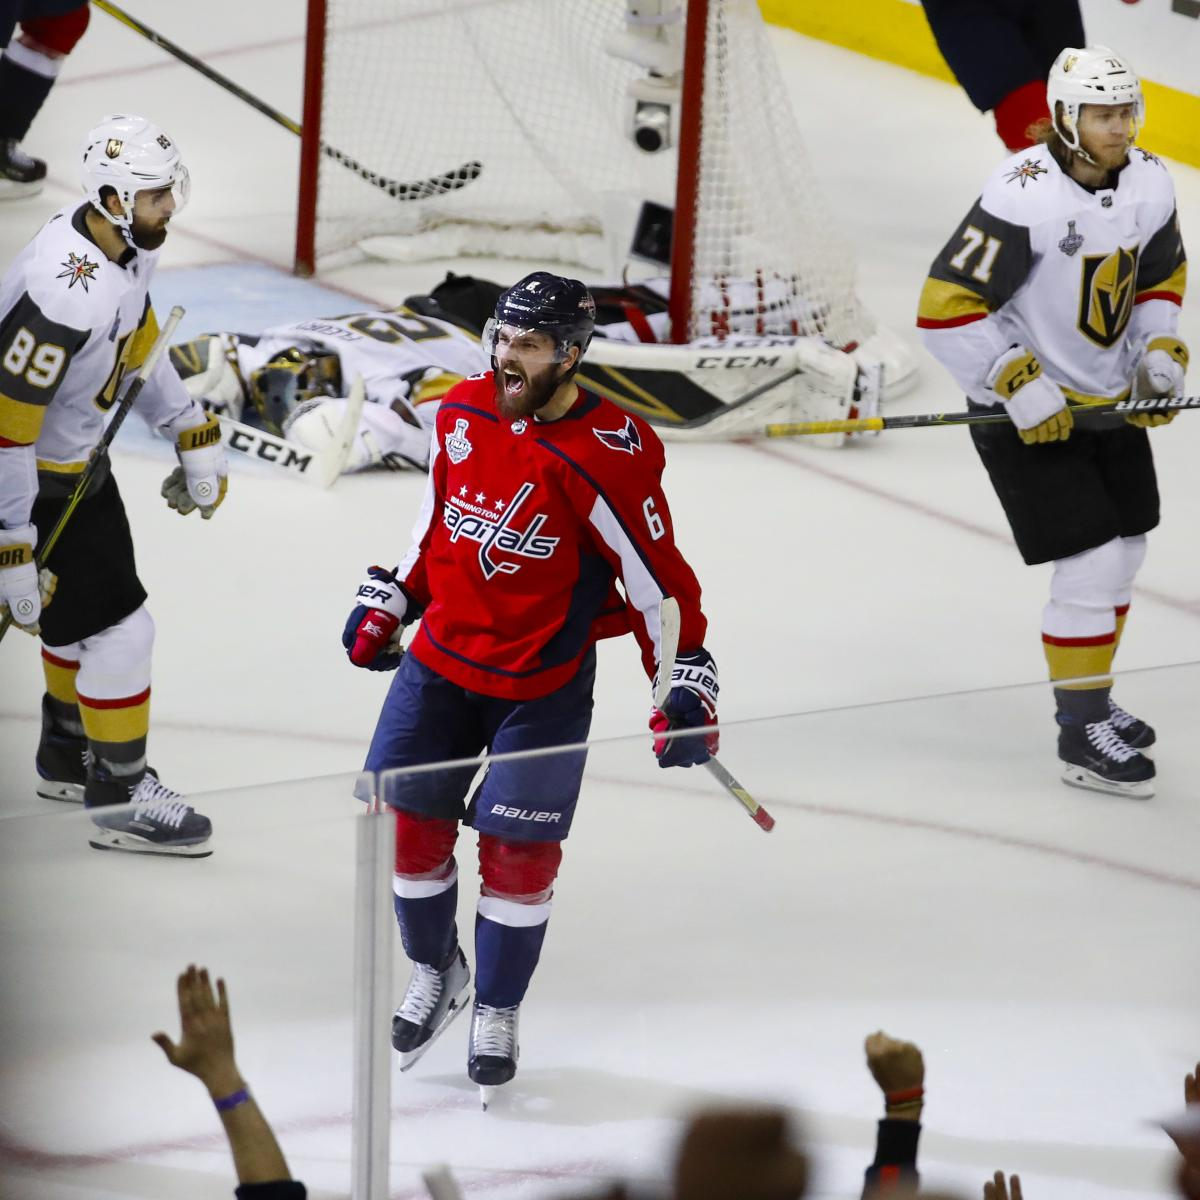 9cee9a695ff Capitals vs. Golden Knights 2018 NHL Final Game 5 Odds